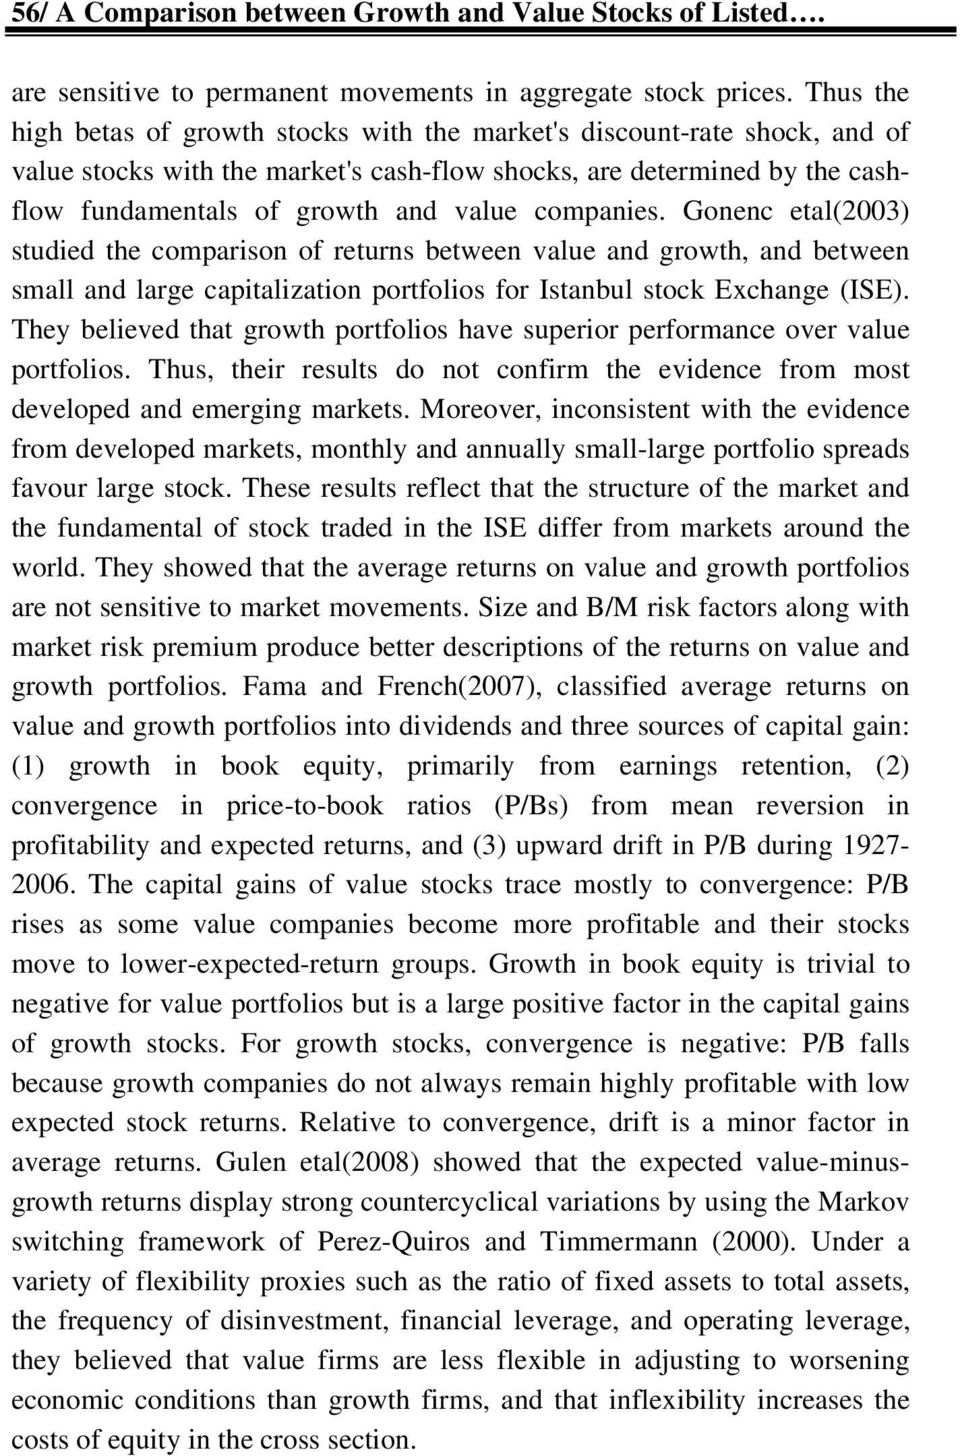 companies. Gonenc etal(2003) studied the comparison of returns between value and growth, and between small and large capitalization portfolios for Istanbul stock Exchange (ISE).